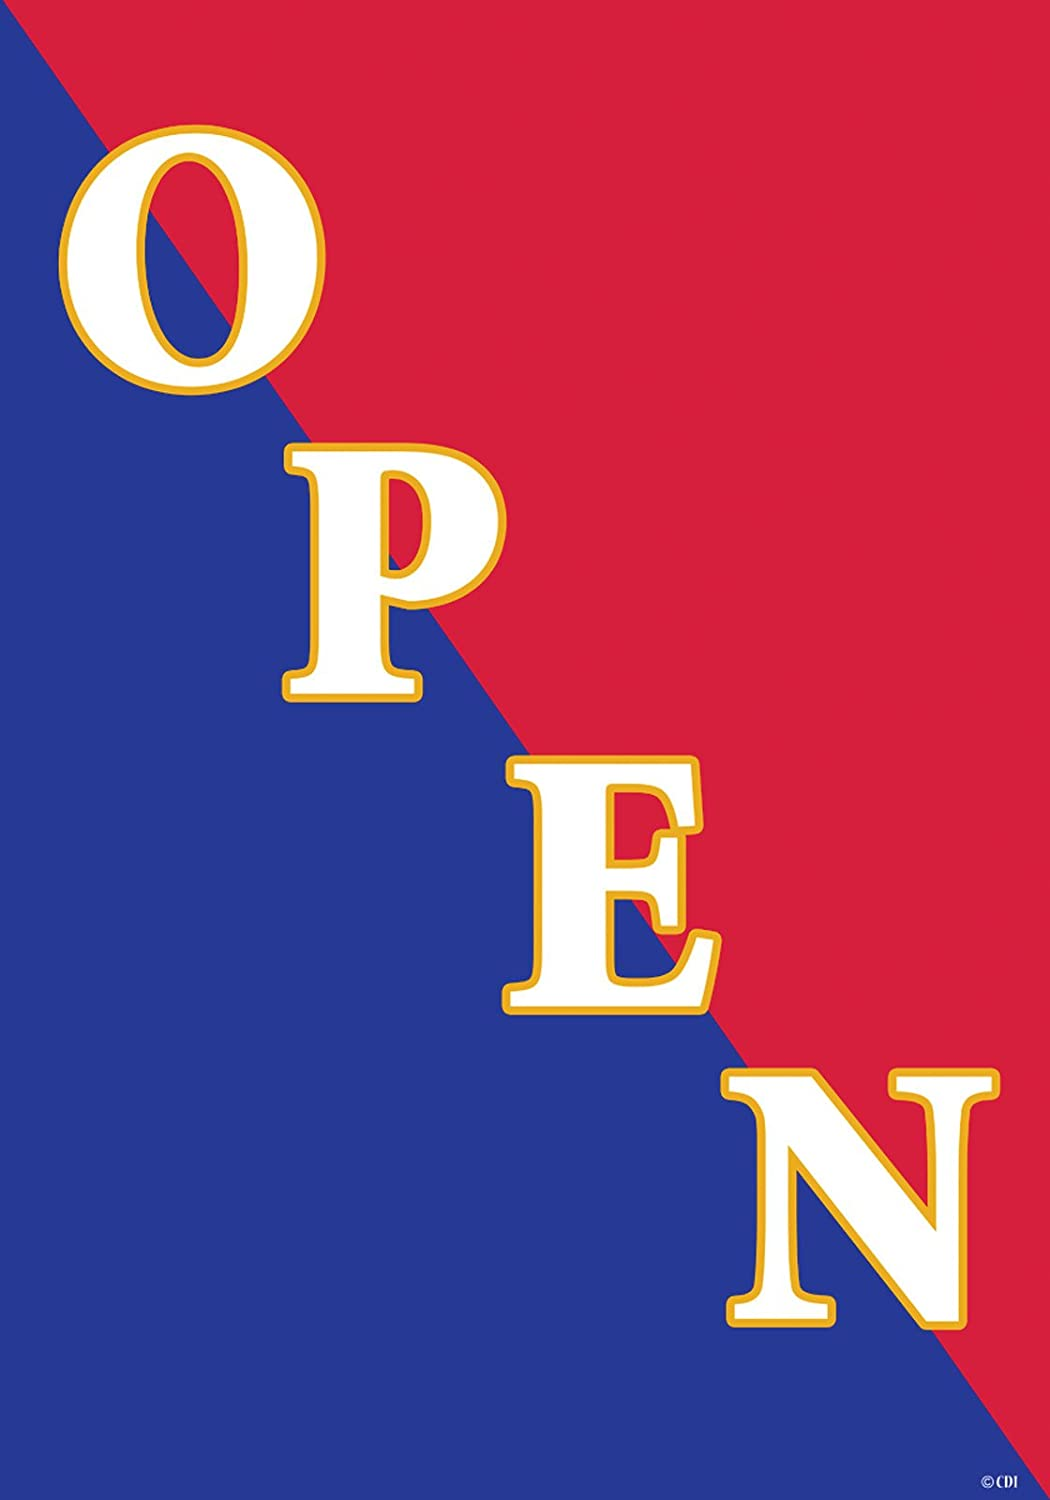 """"""" OPEN """" - Red, White & Blue - Double Sided Standard Size Decorative Flag 28 X 40 Inches"""